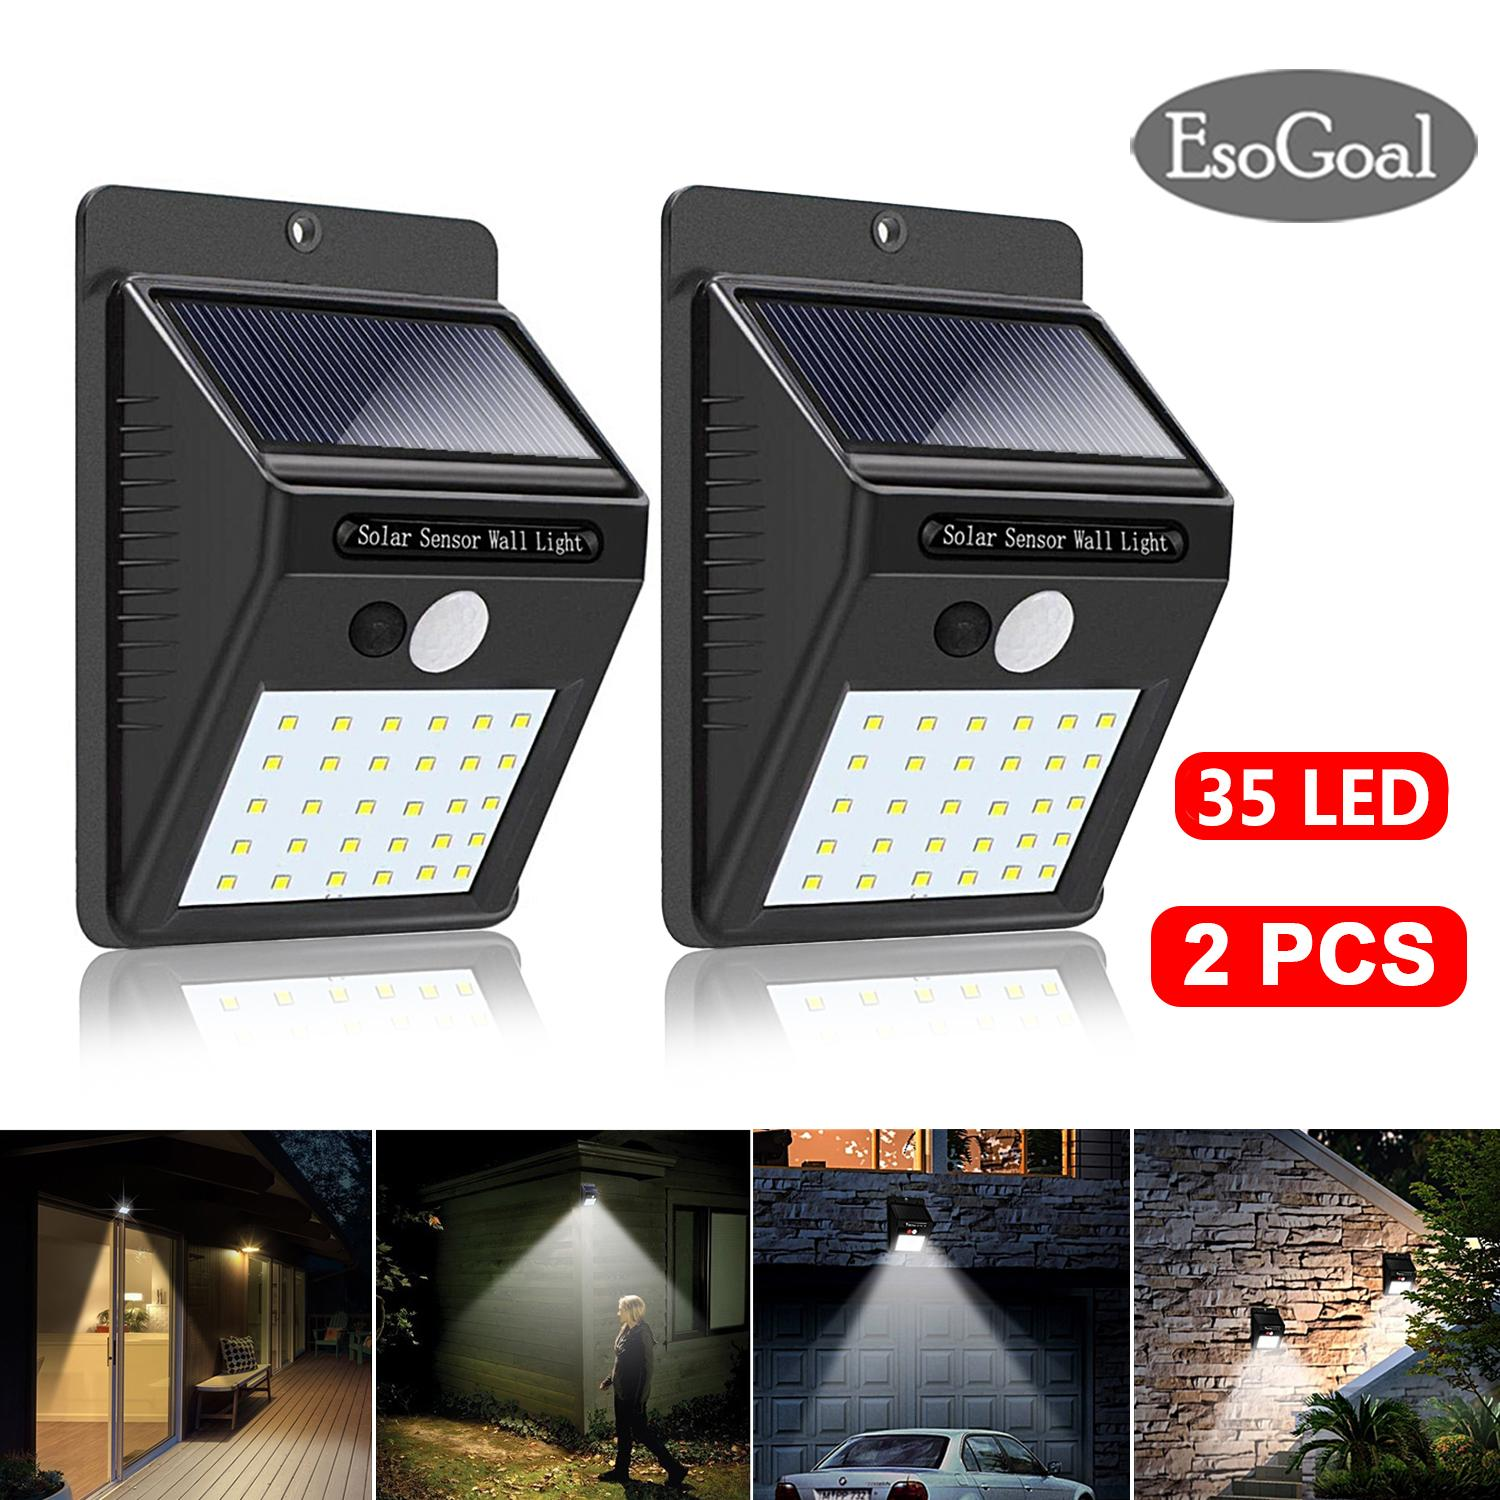 Outdoor Lighting For Sale Lights Prices Brands Review Automatic Low Power Emergency Light In Philippines